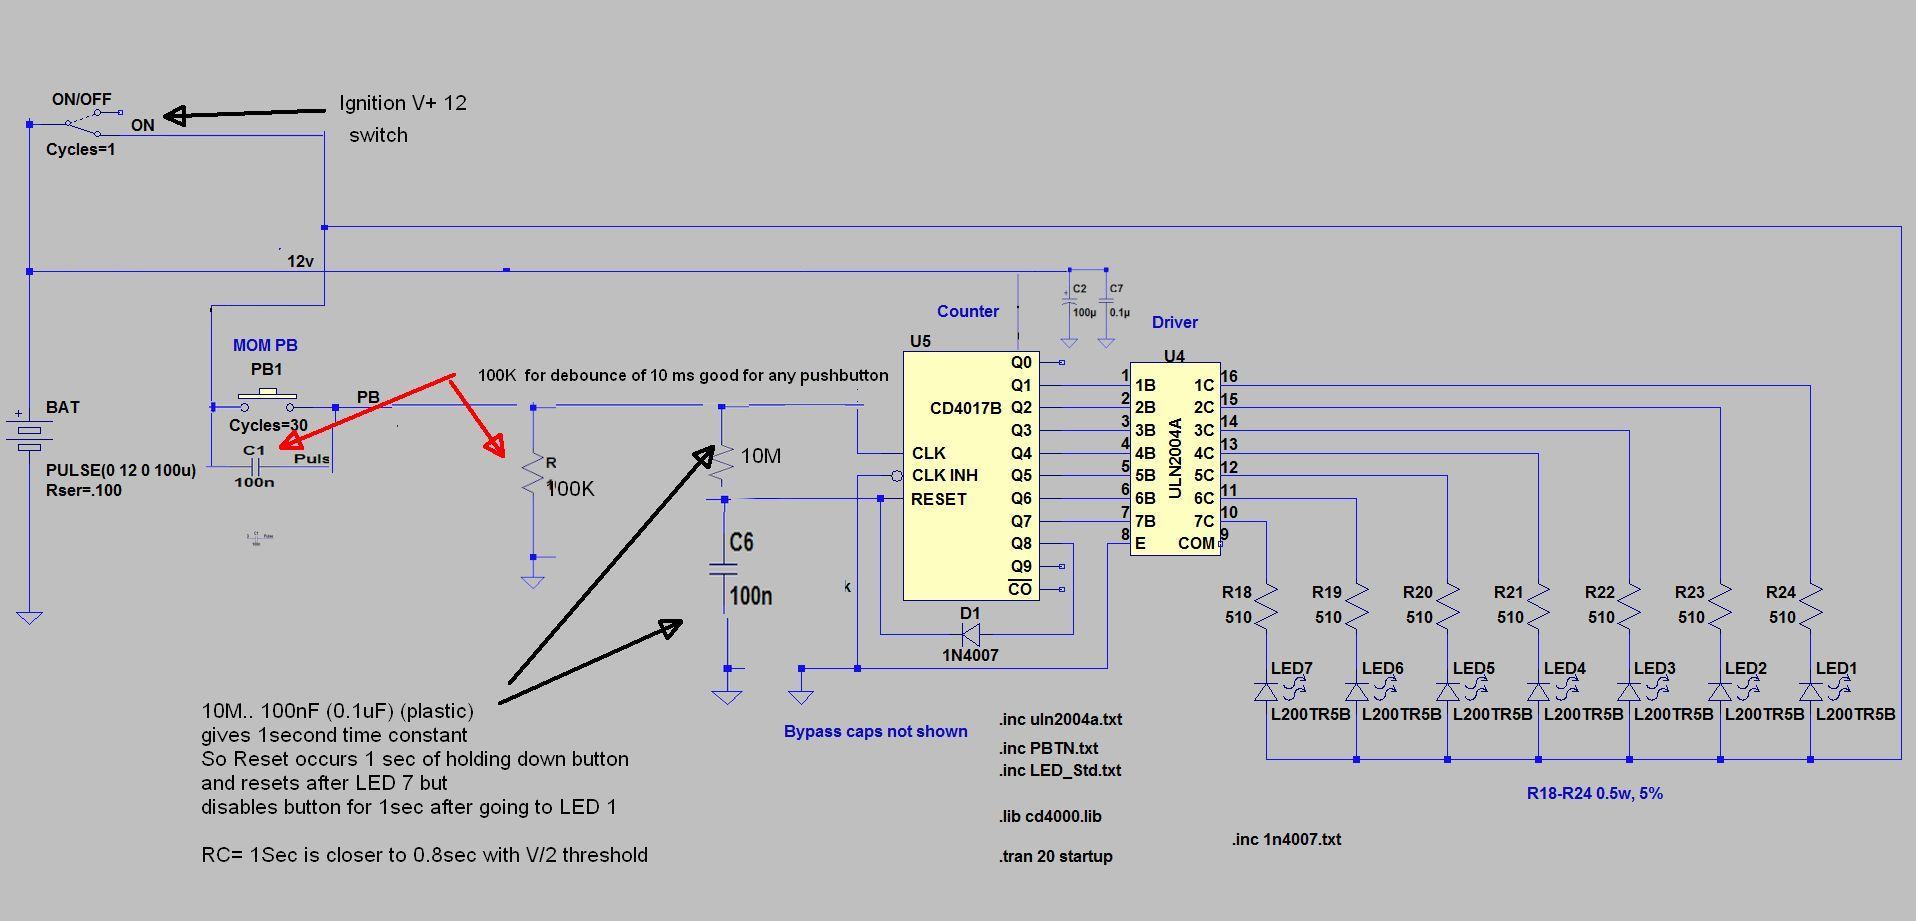 My 1st Project To Cycle Through 7 Leds With Push Button Page 2 Debounce Circuit Got It I See The Skinny Rat Corrected